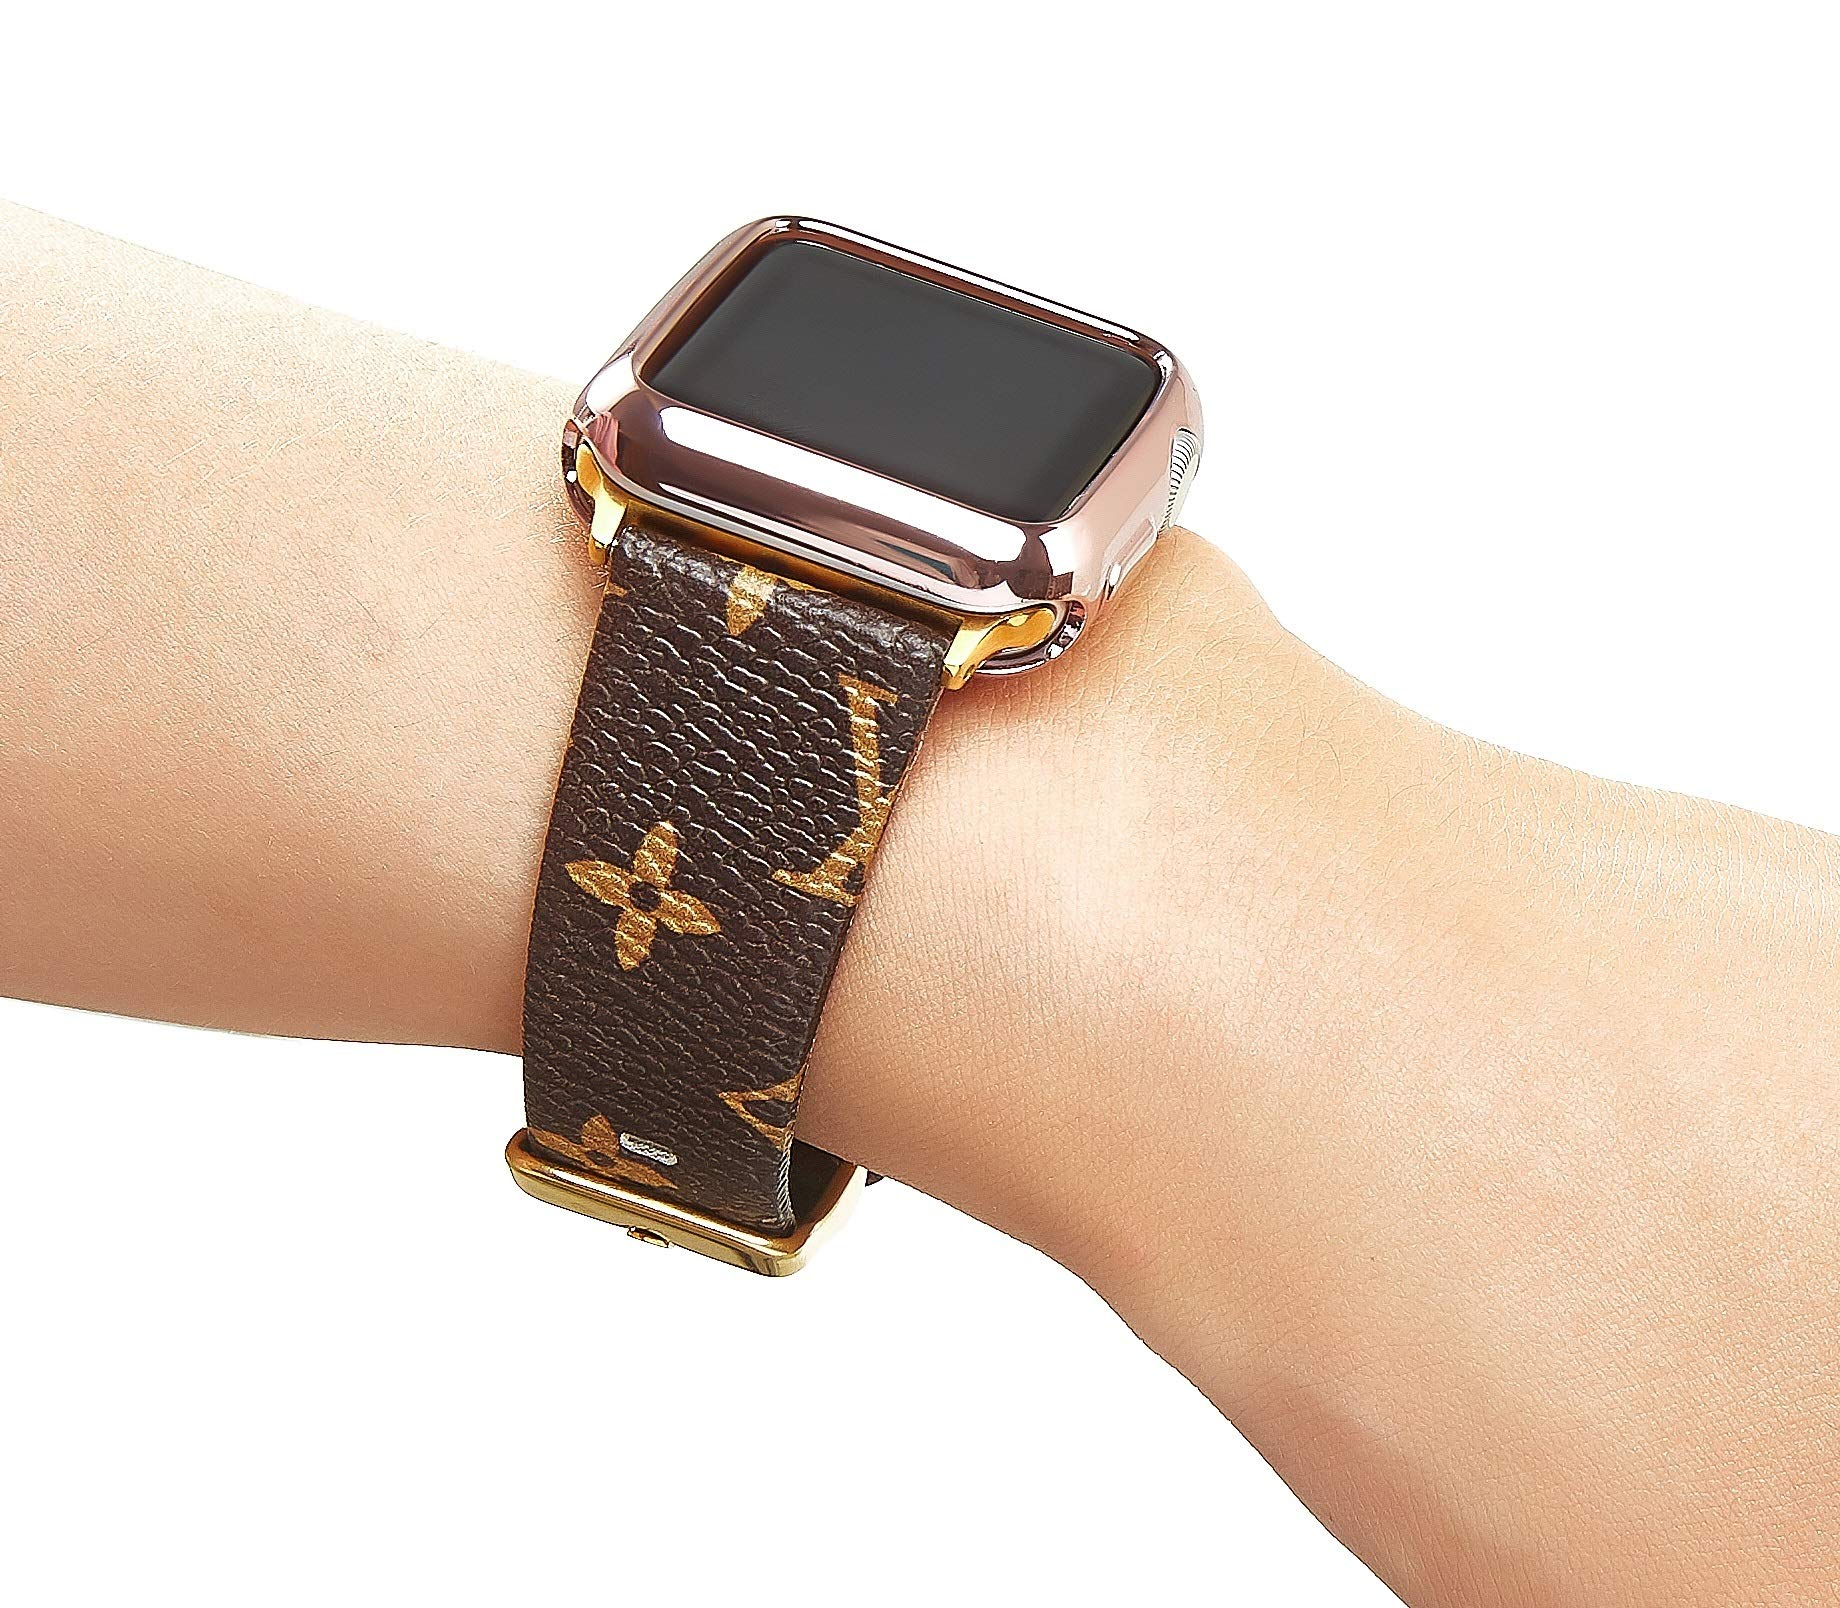 Leather Bands Compatible Apple Watch 38mm 40mm Series 4/3/2/1 Classic Rose Gold Buckle Replacement Strap Wristbands Stainless Steel Adapters (Brown 38mm) by GUVCYO